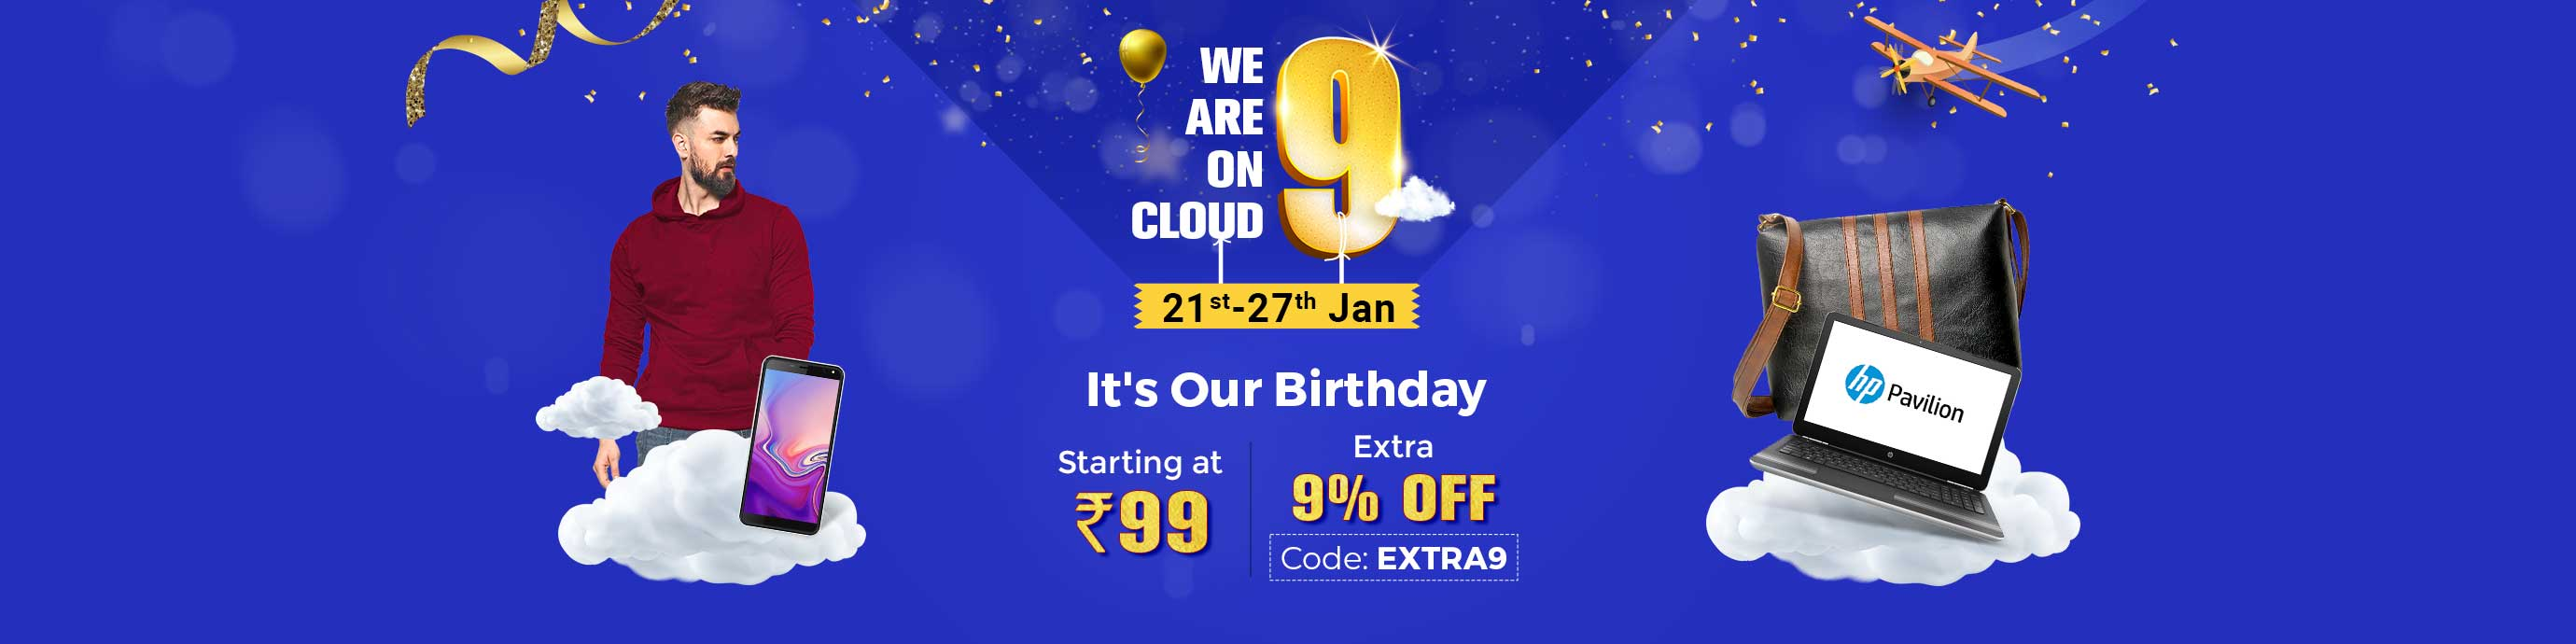 ShopClues.com - Additional 9% discount on all products